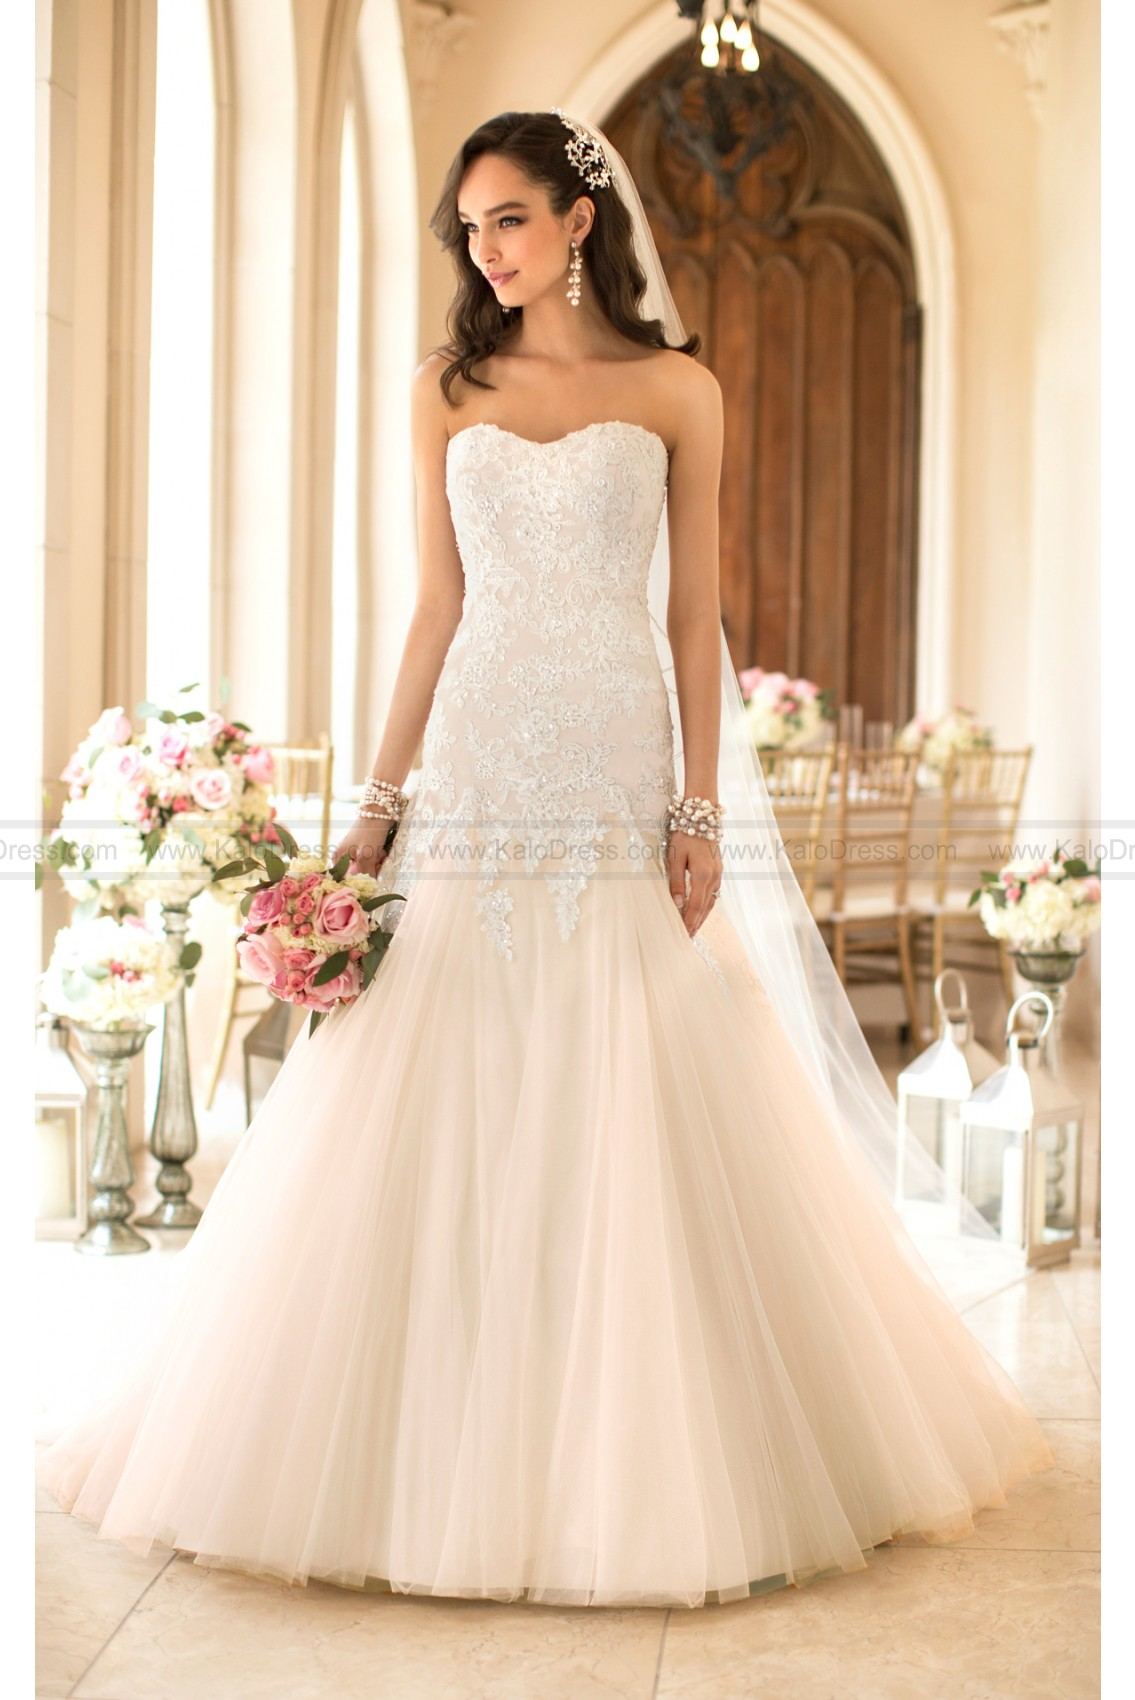 Stella York Style 5885 - Formal Wedding Dresses